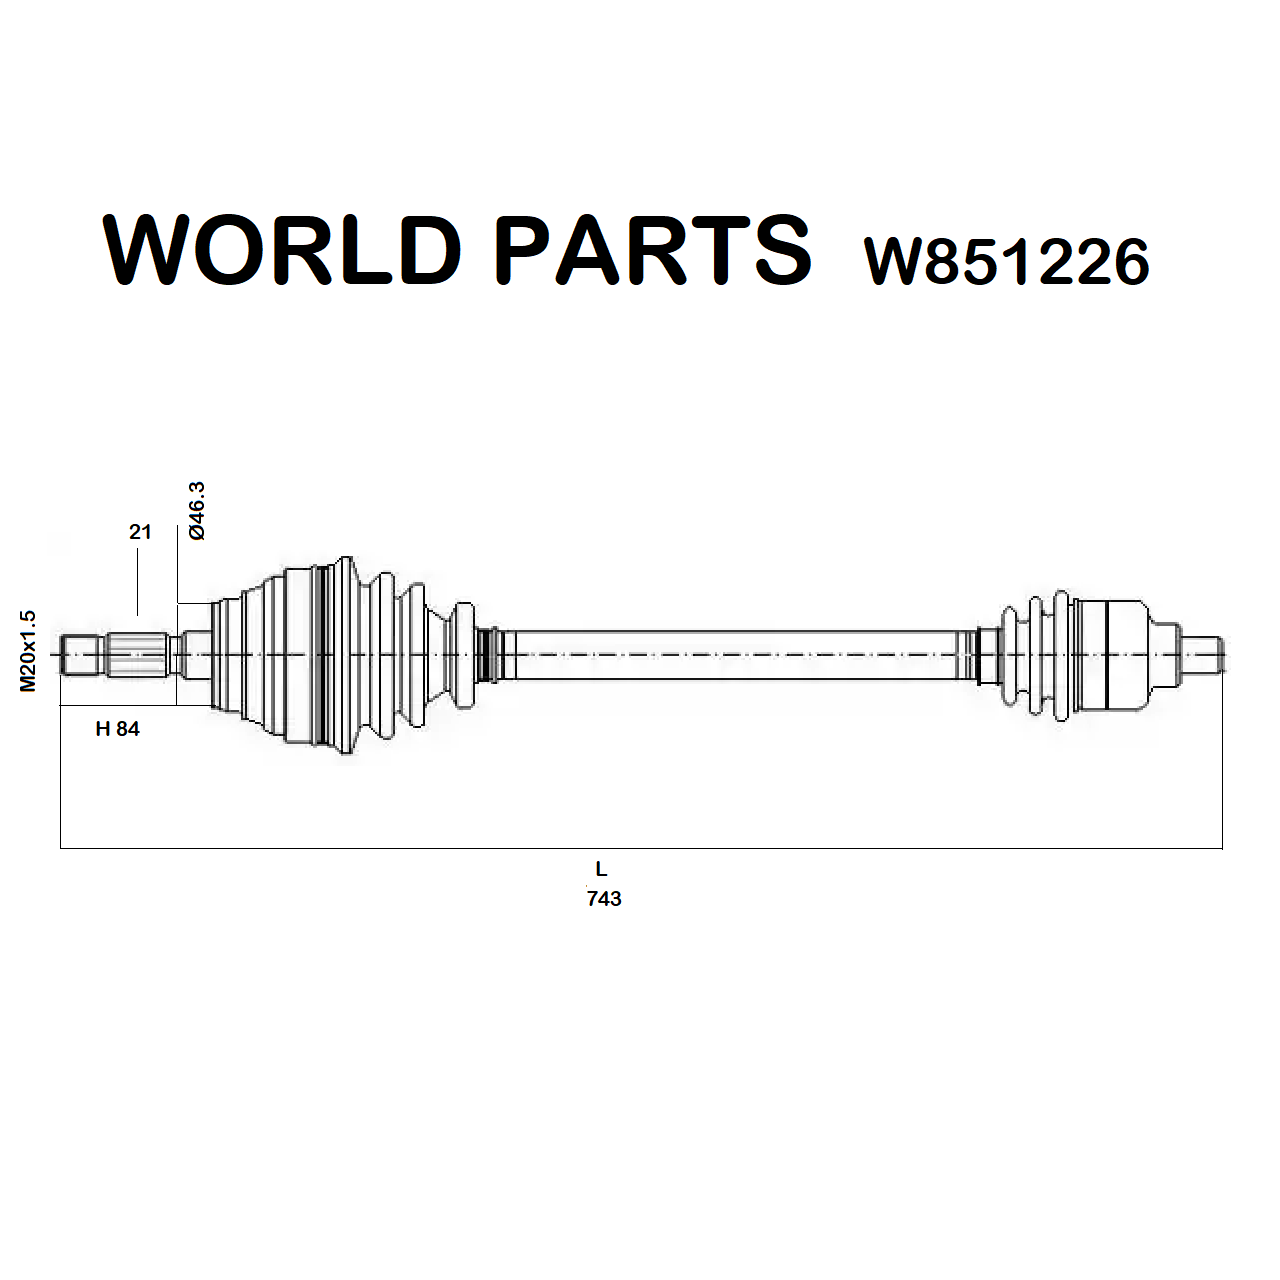 FRONT HALF-AXLES RIGHT RENAULT TWINGO 1.2 WORLD PARTS FOR 8200231949